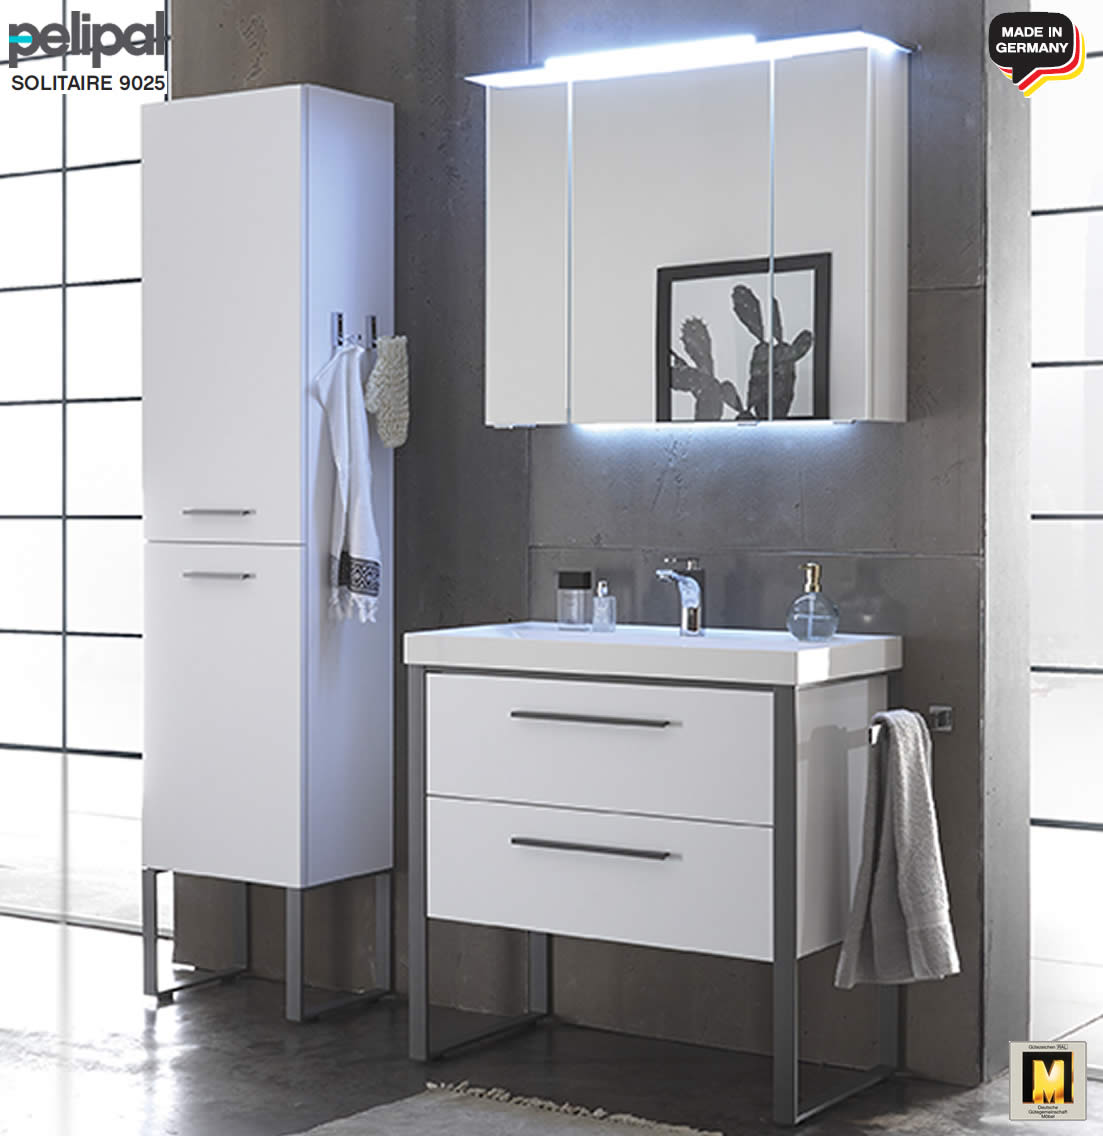 pelipal solitaire 9025 badm bel set 85 cm mineral waschtisch led spiegelschrank v1. Black Bedroom Furniture Sets. Home Design Ideas